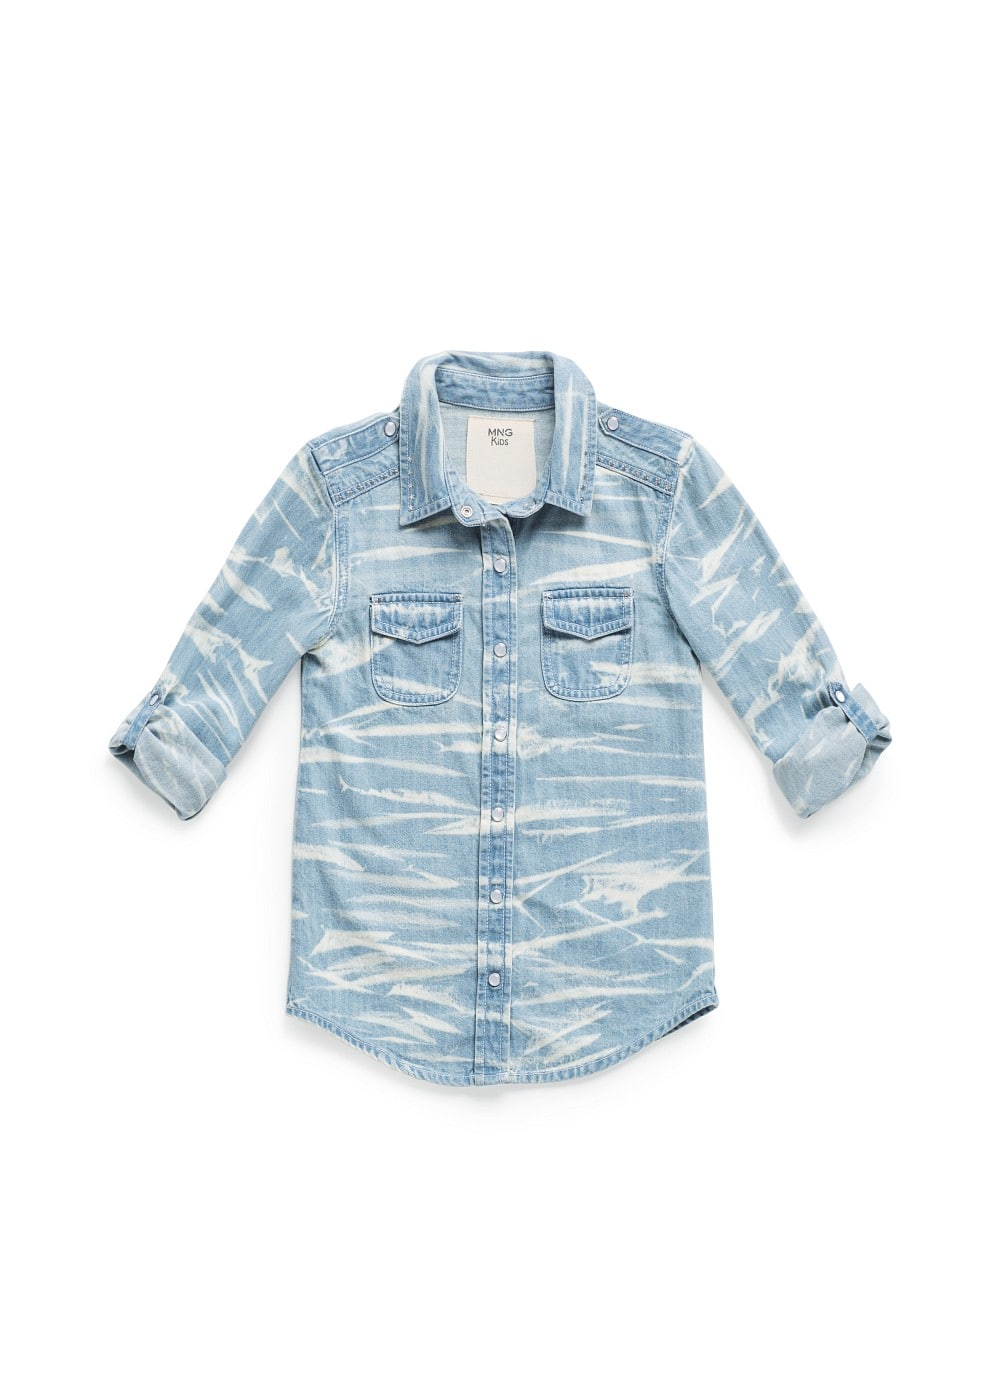 TIE-DYE EFFECT DENIM SHIRT